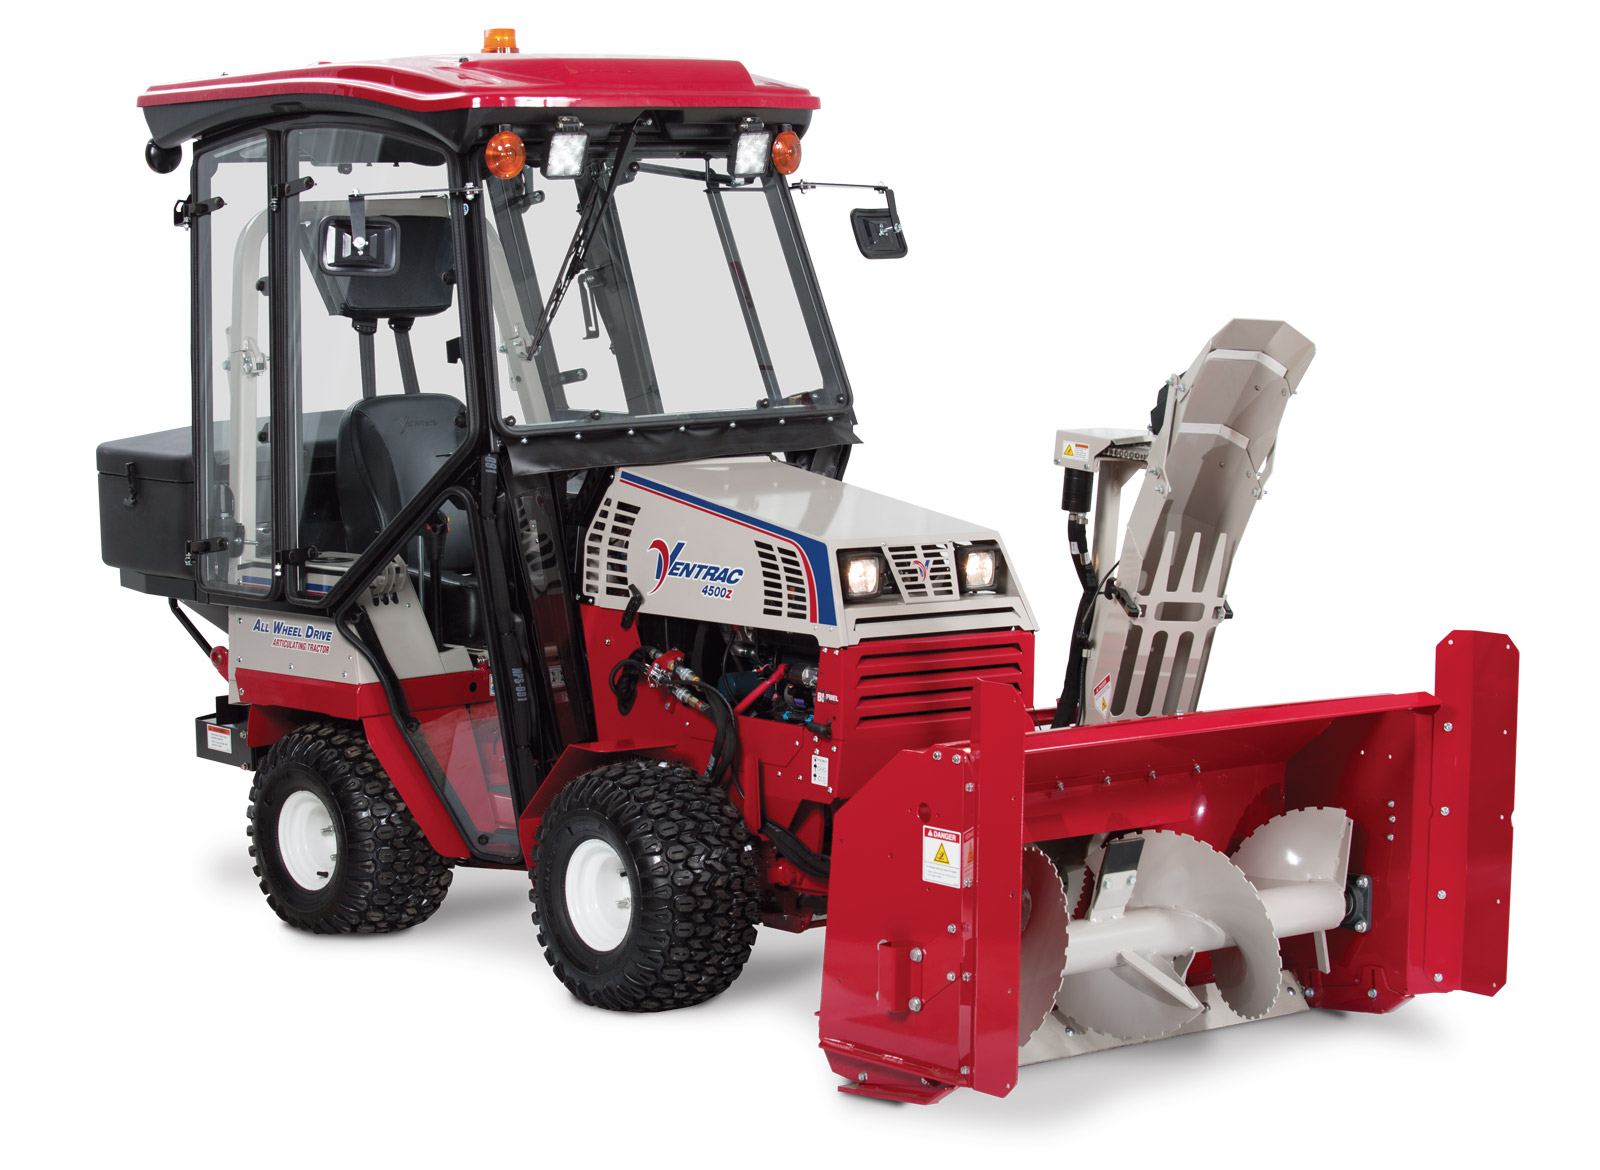 Used Snow Blowers Ventrac Kx523 Snow Blower